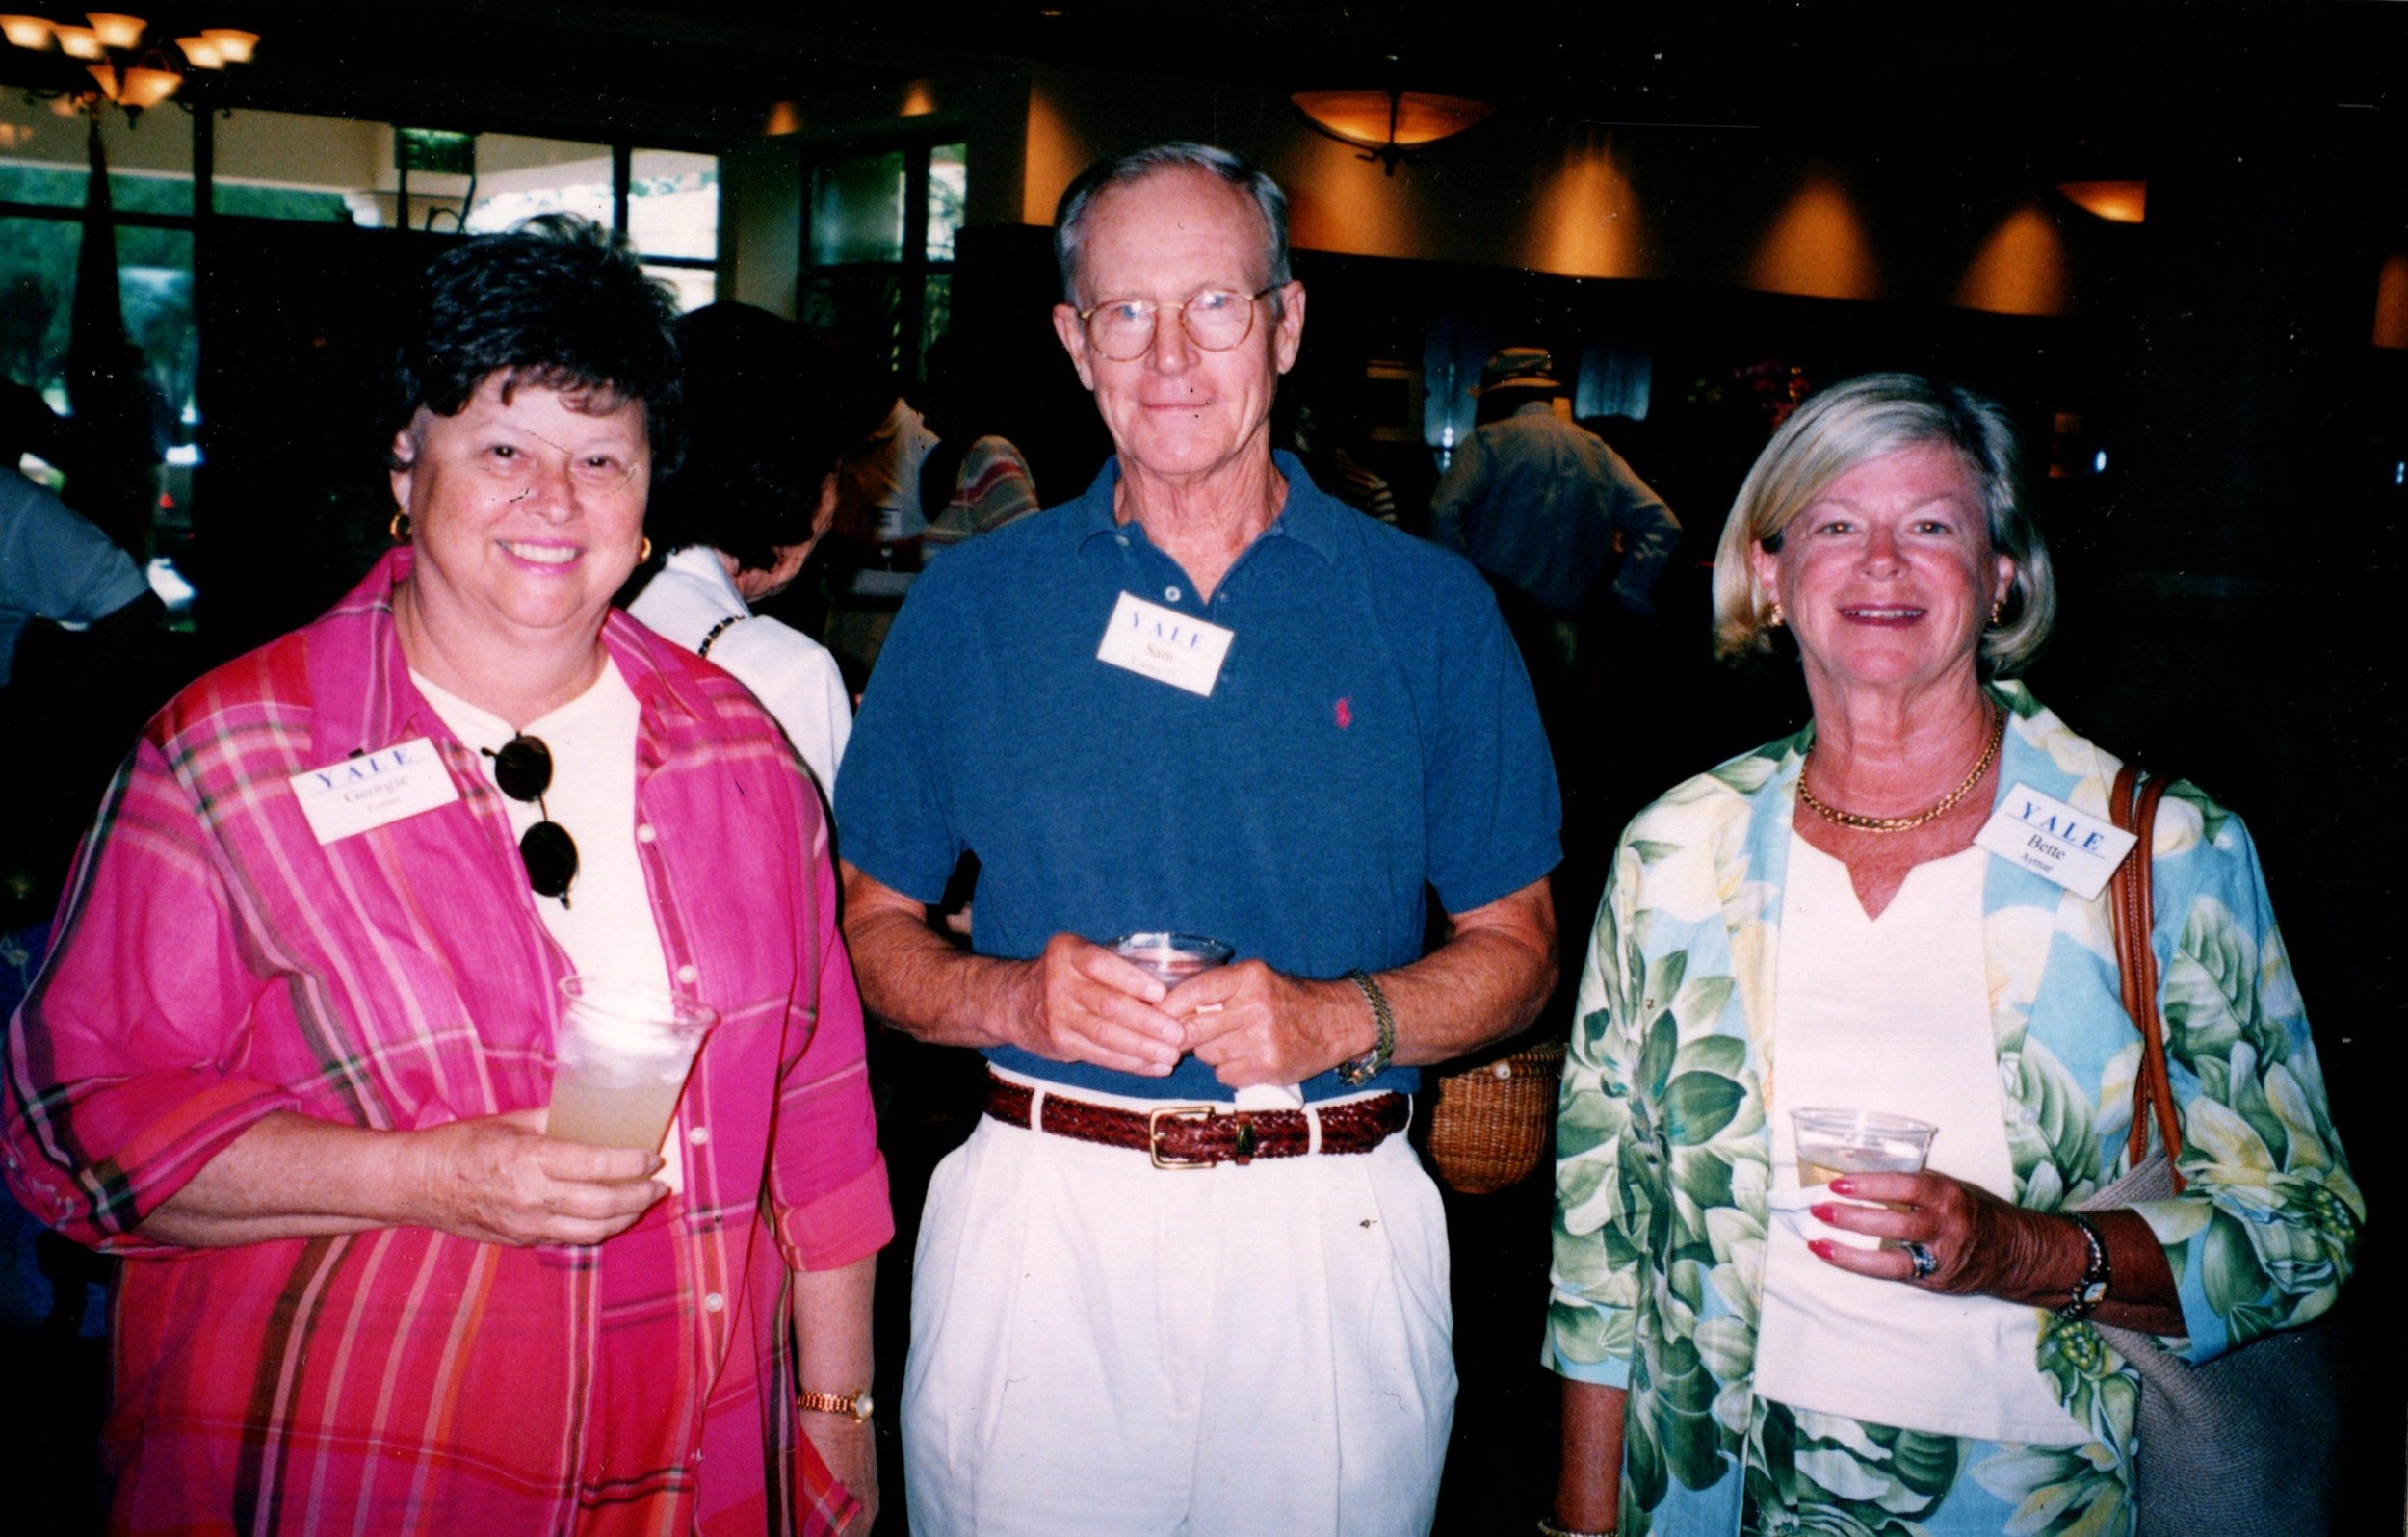 4_6_2003 - IVY LEAGUE PICNIC - VINEYARDS COUNTRY CLUB 3.jpg